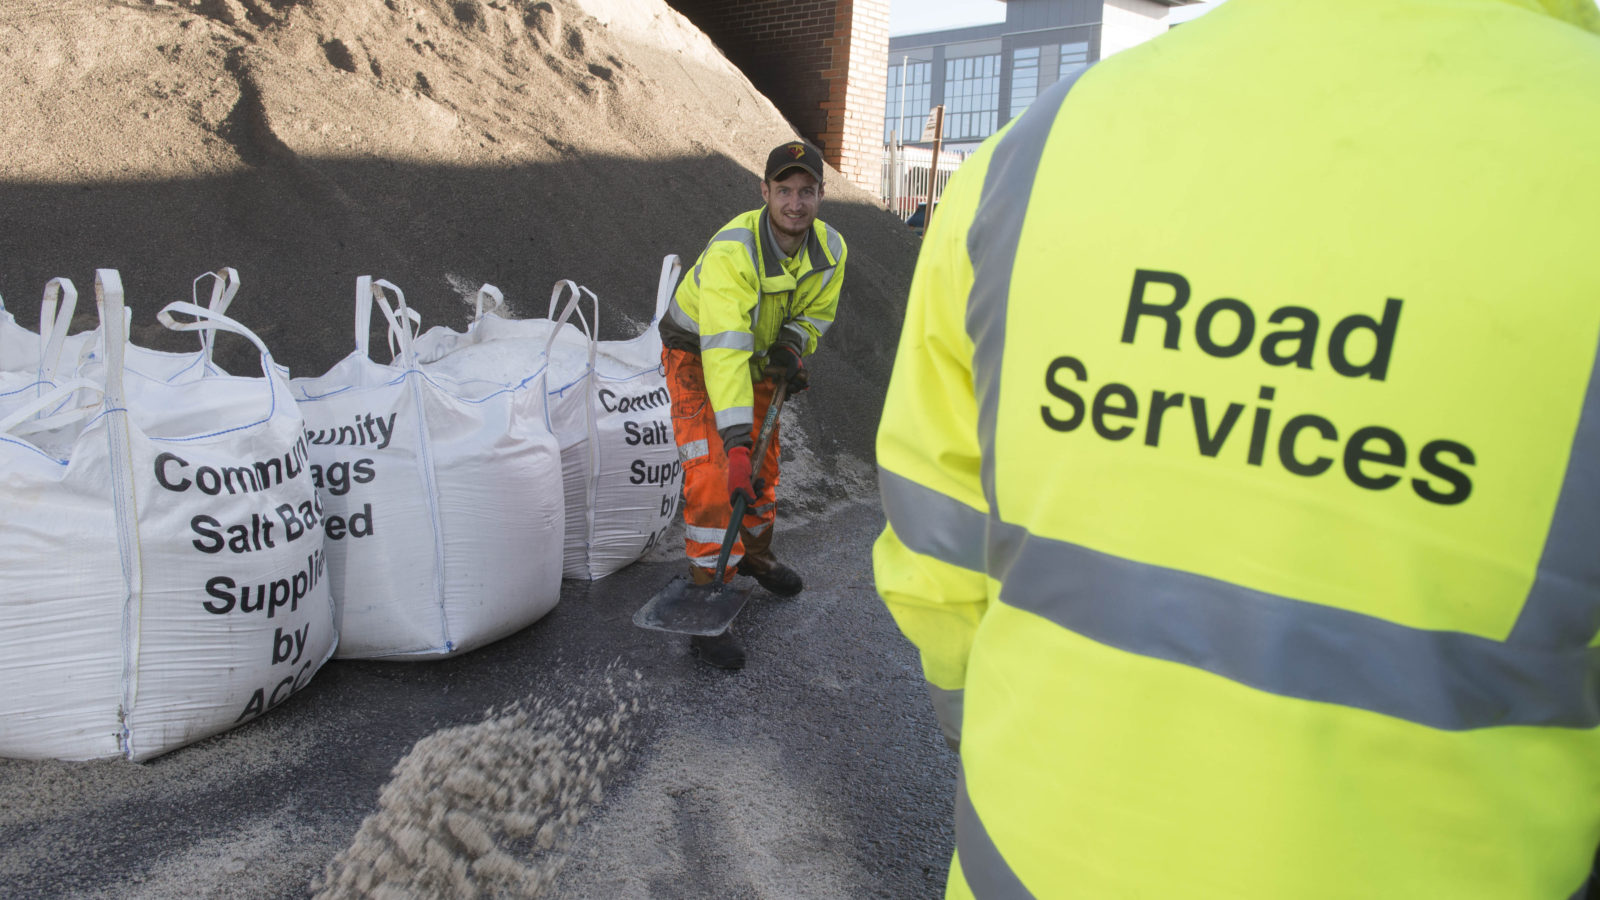 Residents urged to band together and get a free one-tonne community salt bag – before November 15